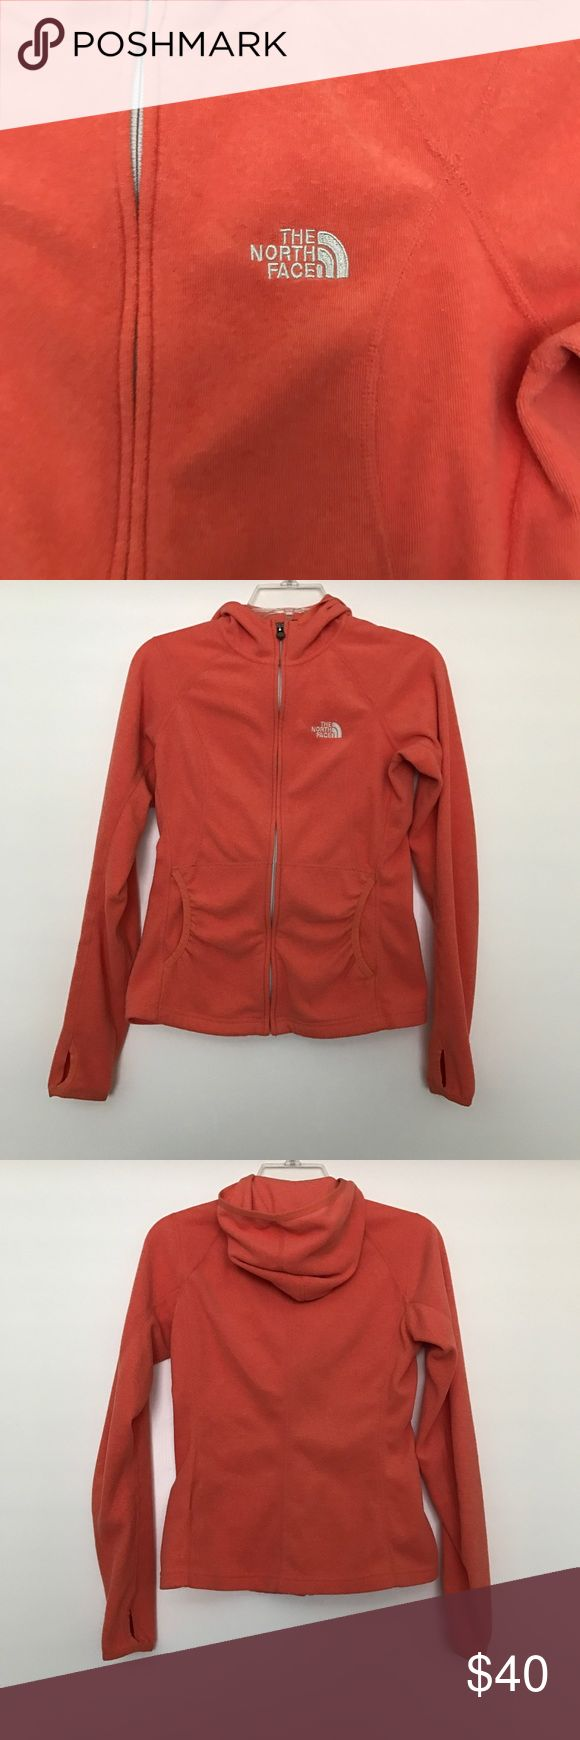 "The North Face women's Polarartec Classic sweater The North Face Polarartec Classic zip up sweater coral orange color very soft. size XS excellent condition  chest 17"" waist 14"" sleeve length 26"" sweater length 23"" (smoke free pet free home) The North Face Sweaters"